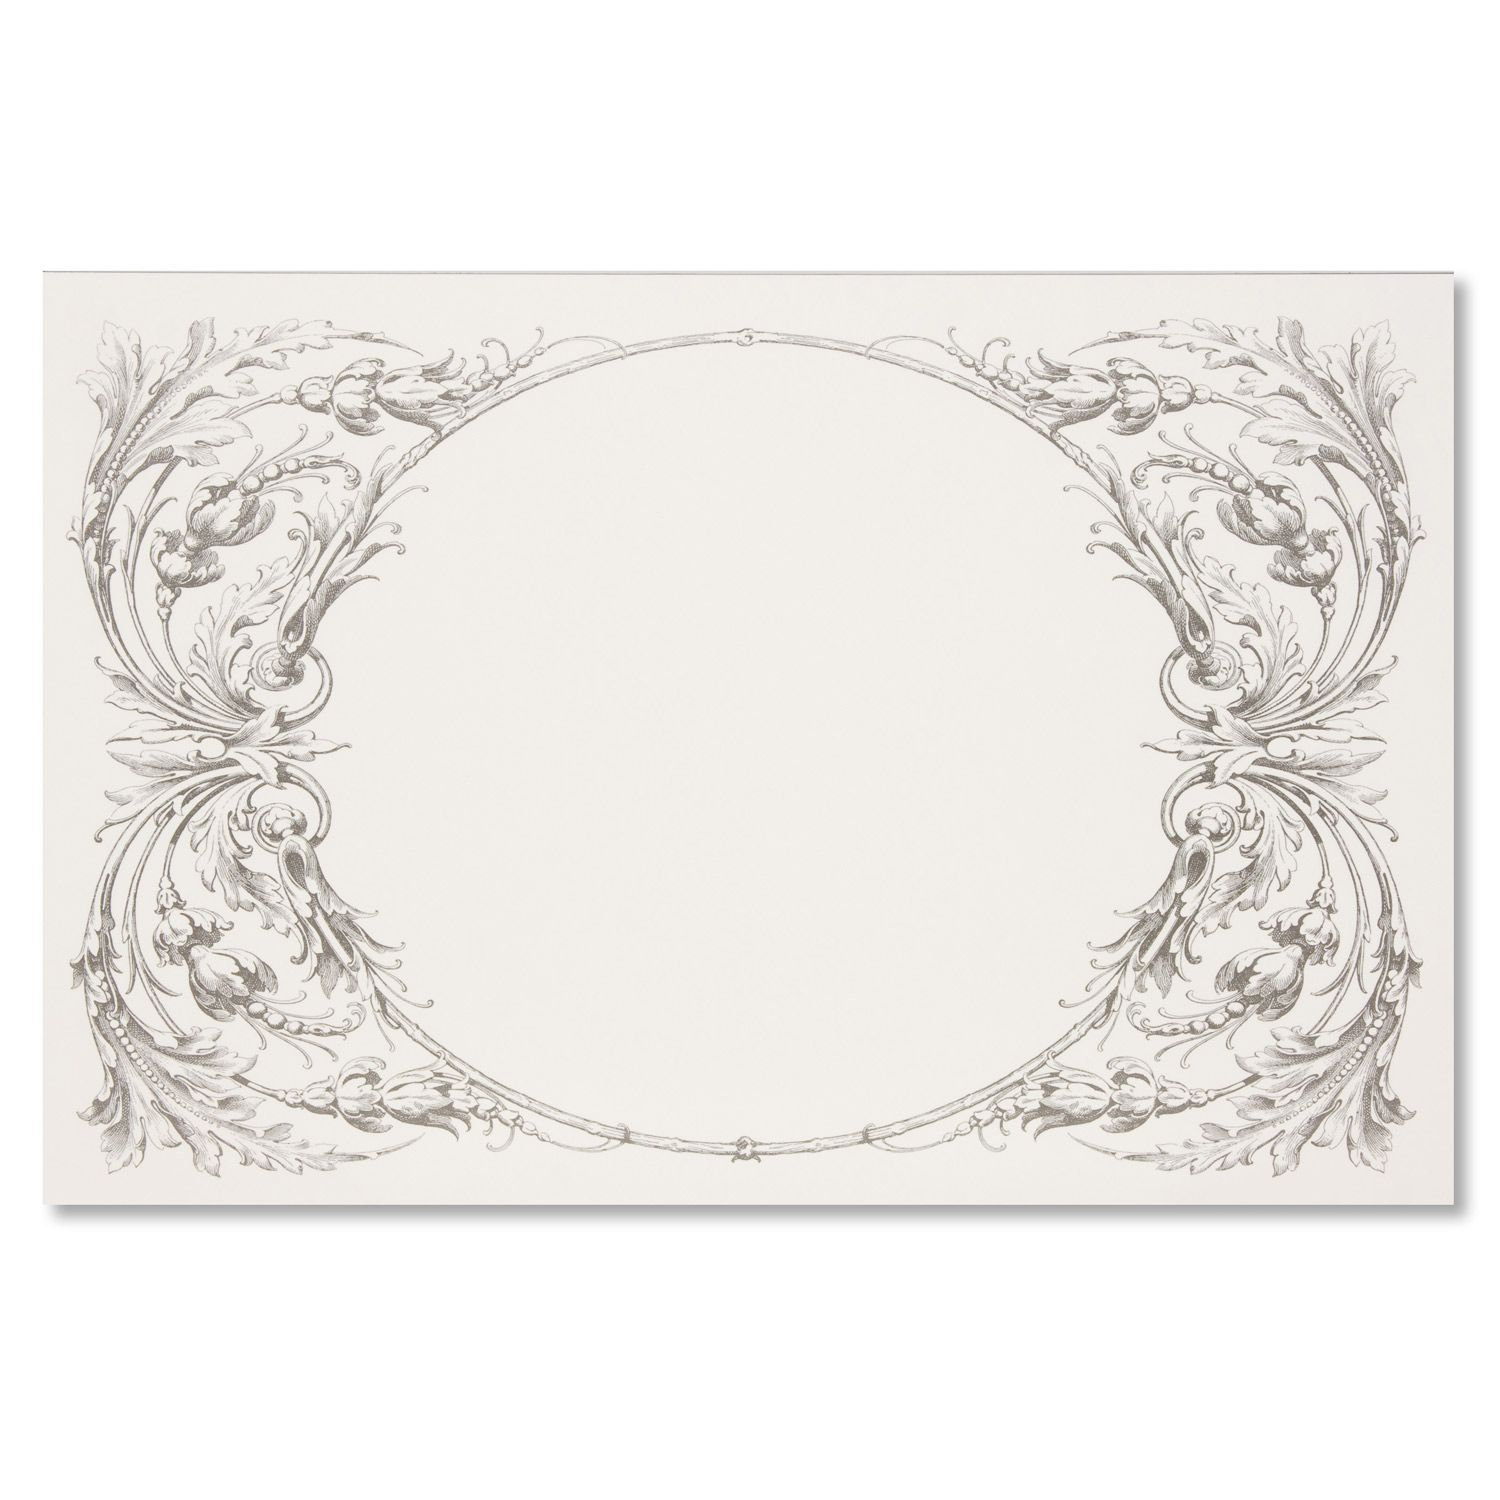 Italian Scrolls Paper Placemats @LaylaGrayce  sc 1 st  Pinterest & Italian Scrolls Paper Placemats @LaylaGrayce | ~ Baby shower ...